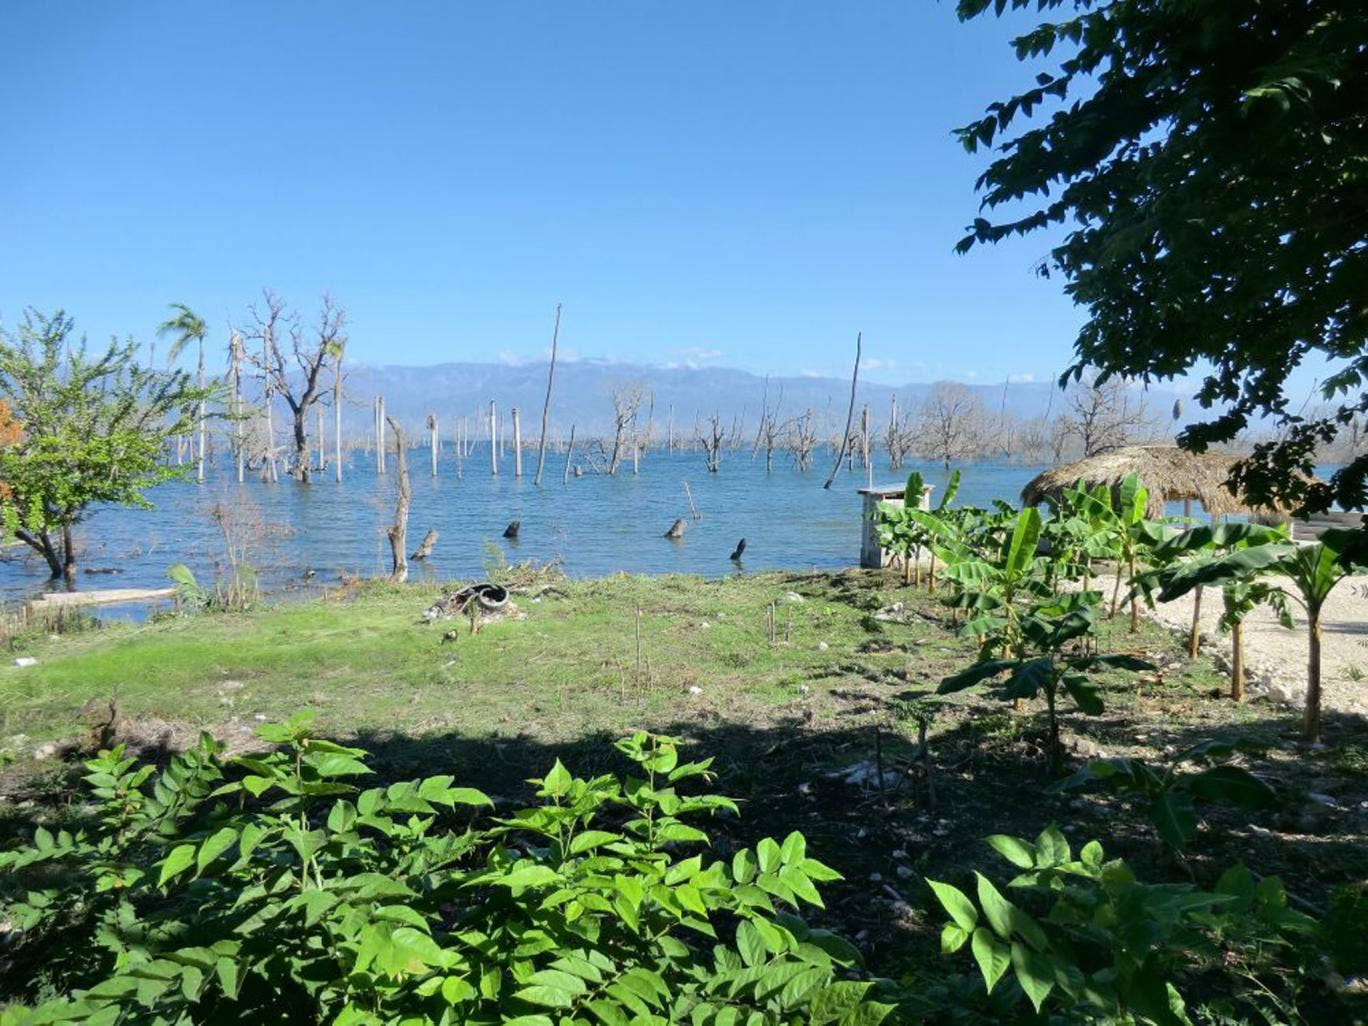 Inundated: floods have ruined crops